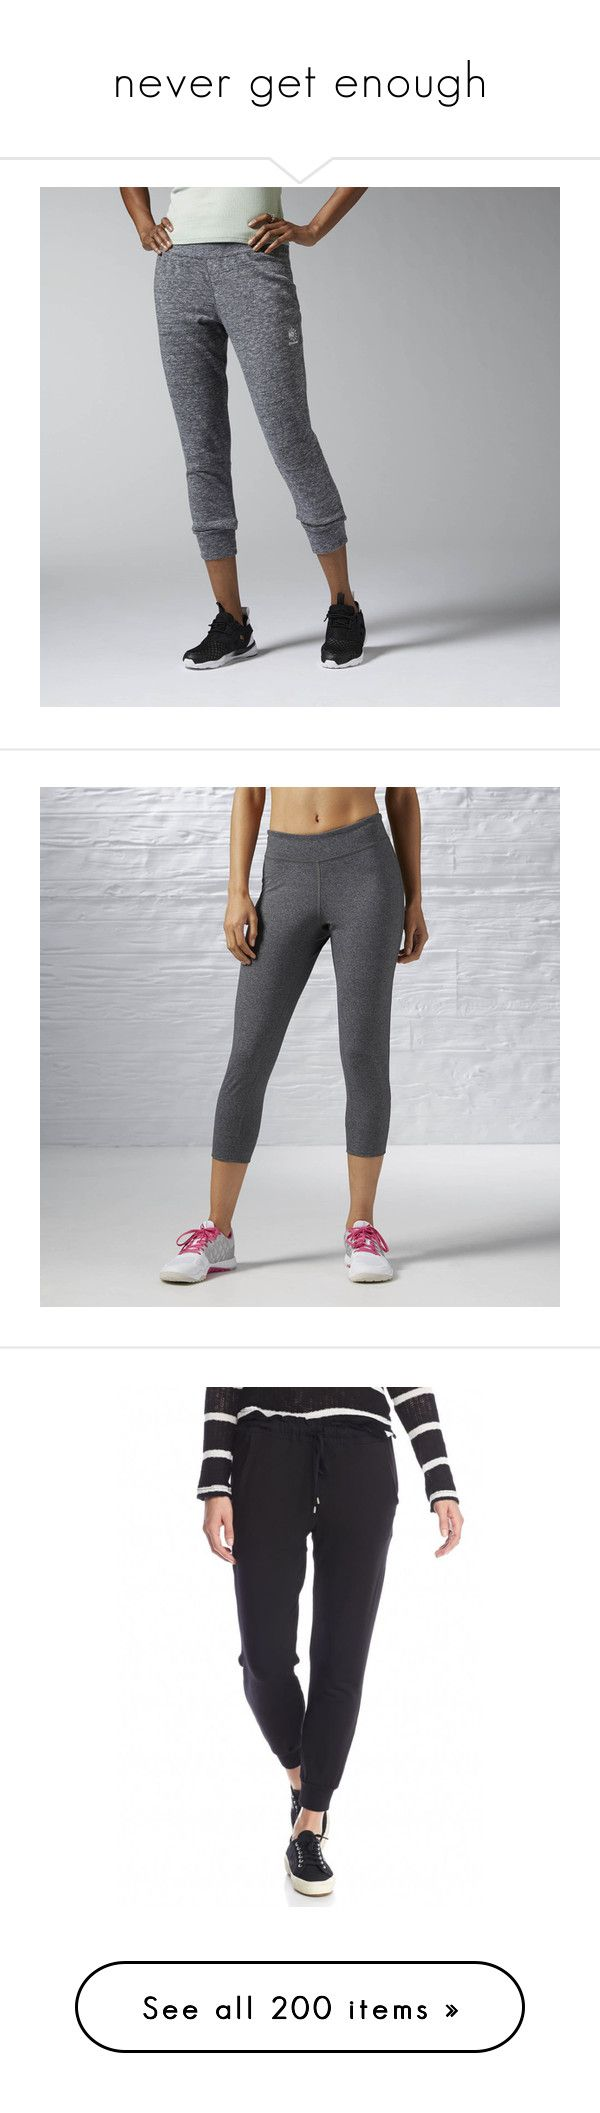 """""""never get enough"""" by ed-misses-me ❤ liked on Polyvore featuring activewear, activewear pants, pants, apparel, athletic sweatpants, reebok sweatpants, slim sweatpants, french terry sweatpants, reebok activewear and dark grey heather"""